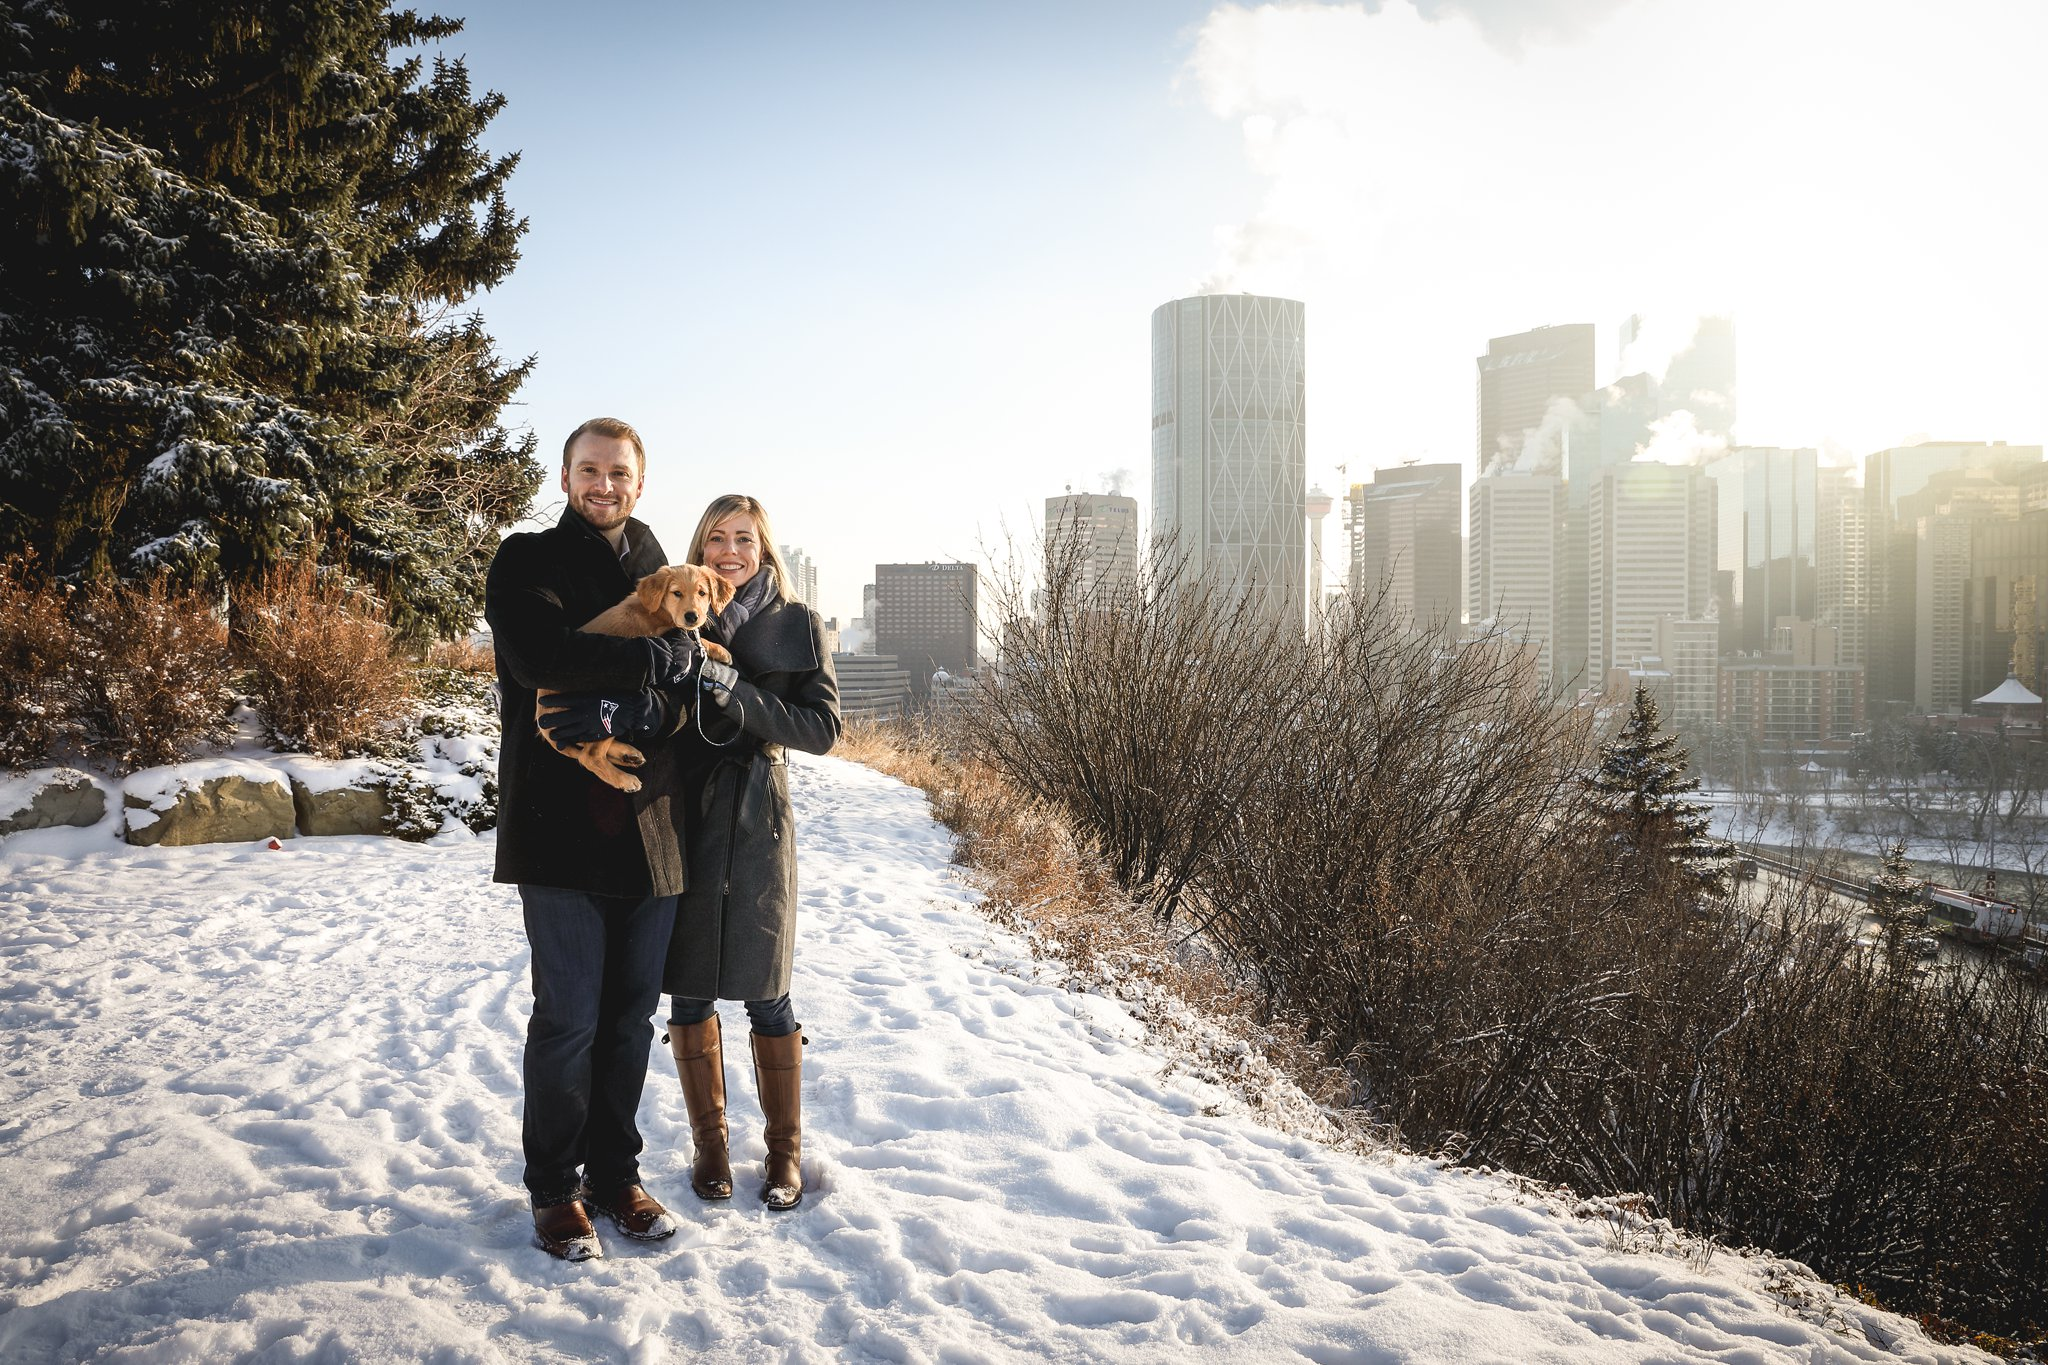 Ashley Daphne Photography Calgary Couple Wedding Photographer Engagement Photos Proposal Photos_0004.jpg